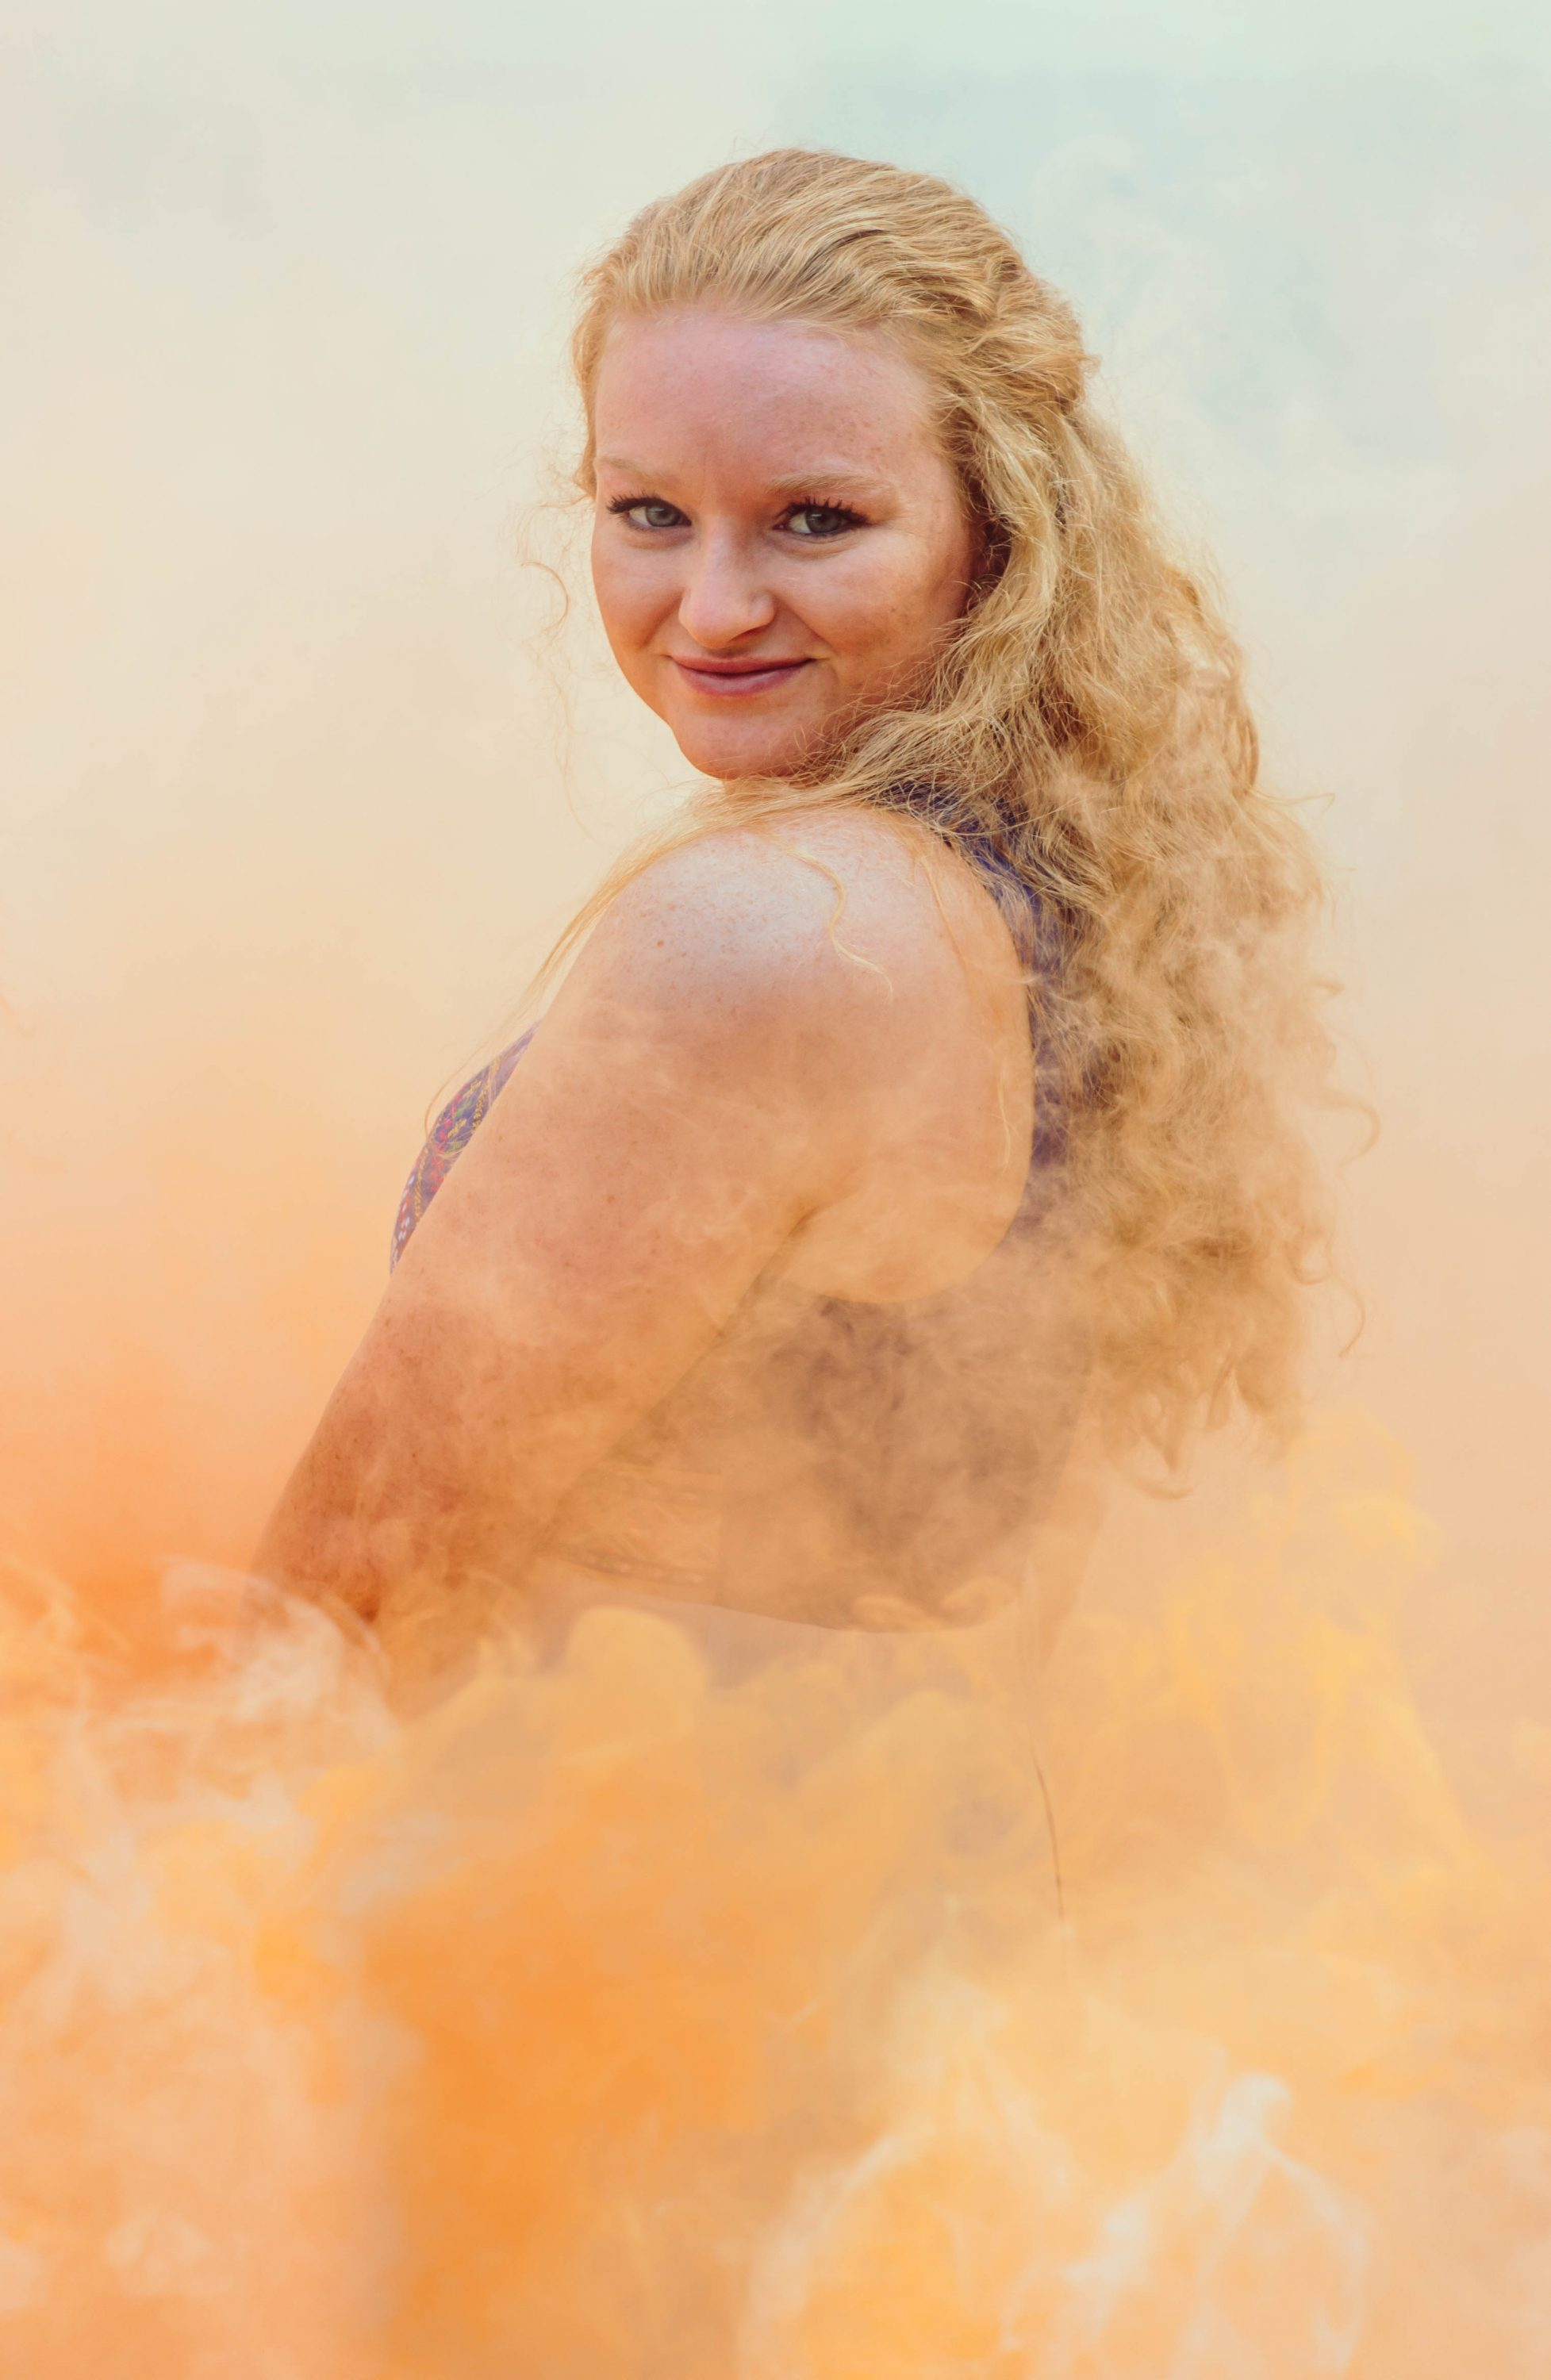 orange smoke bomb with a senior portrait